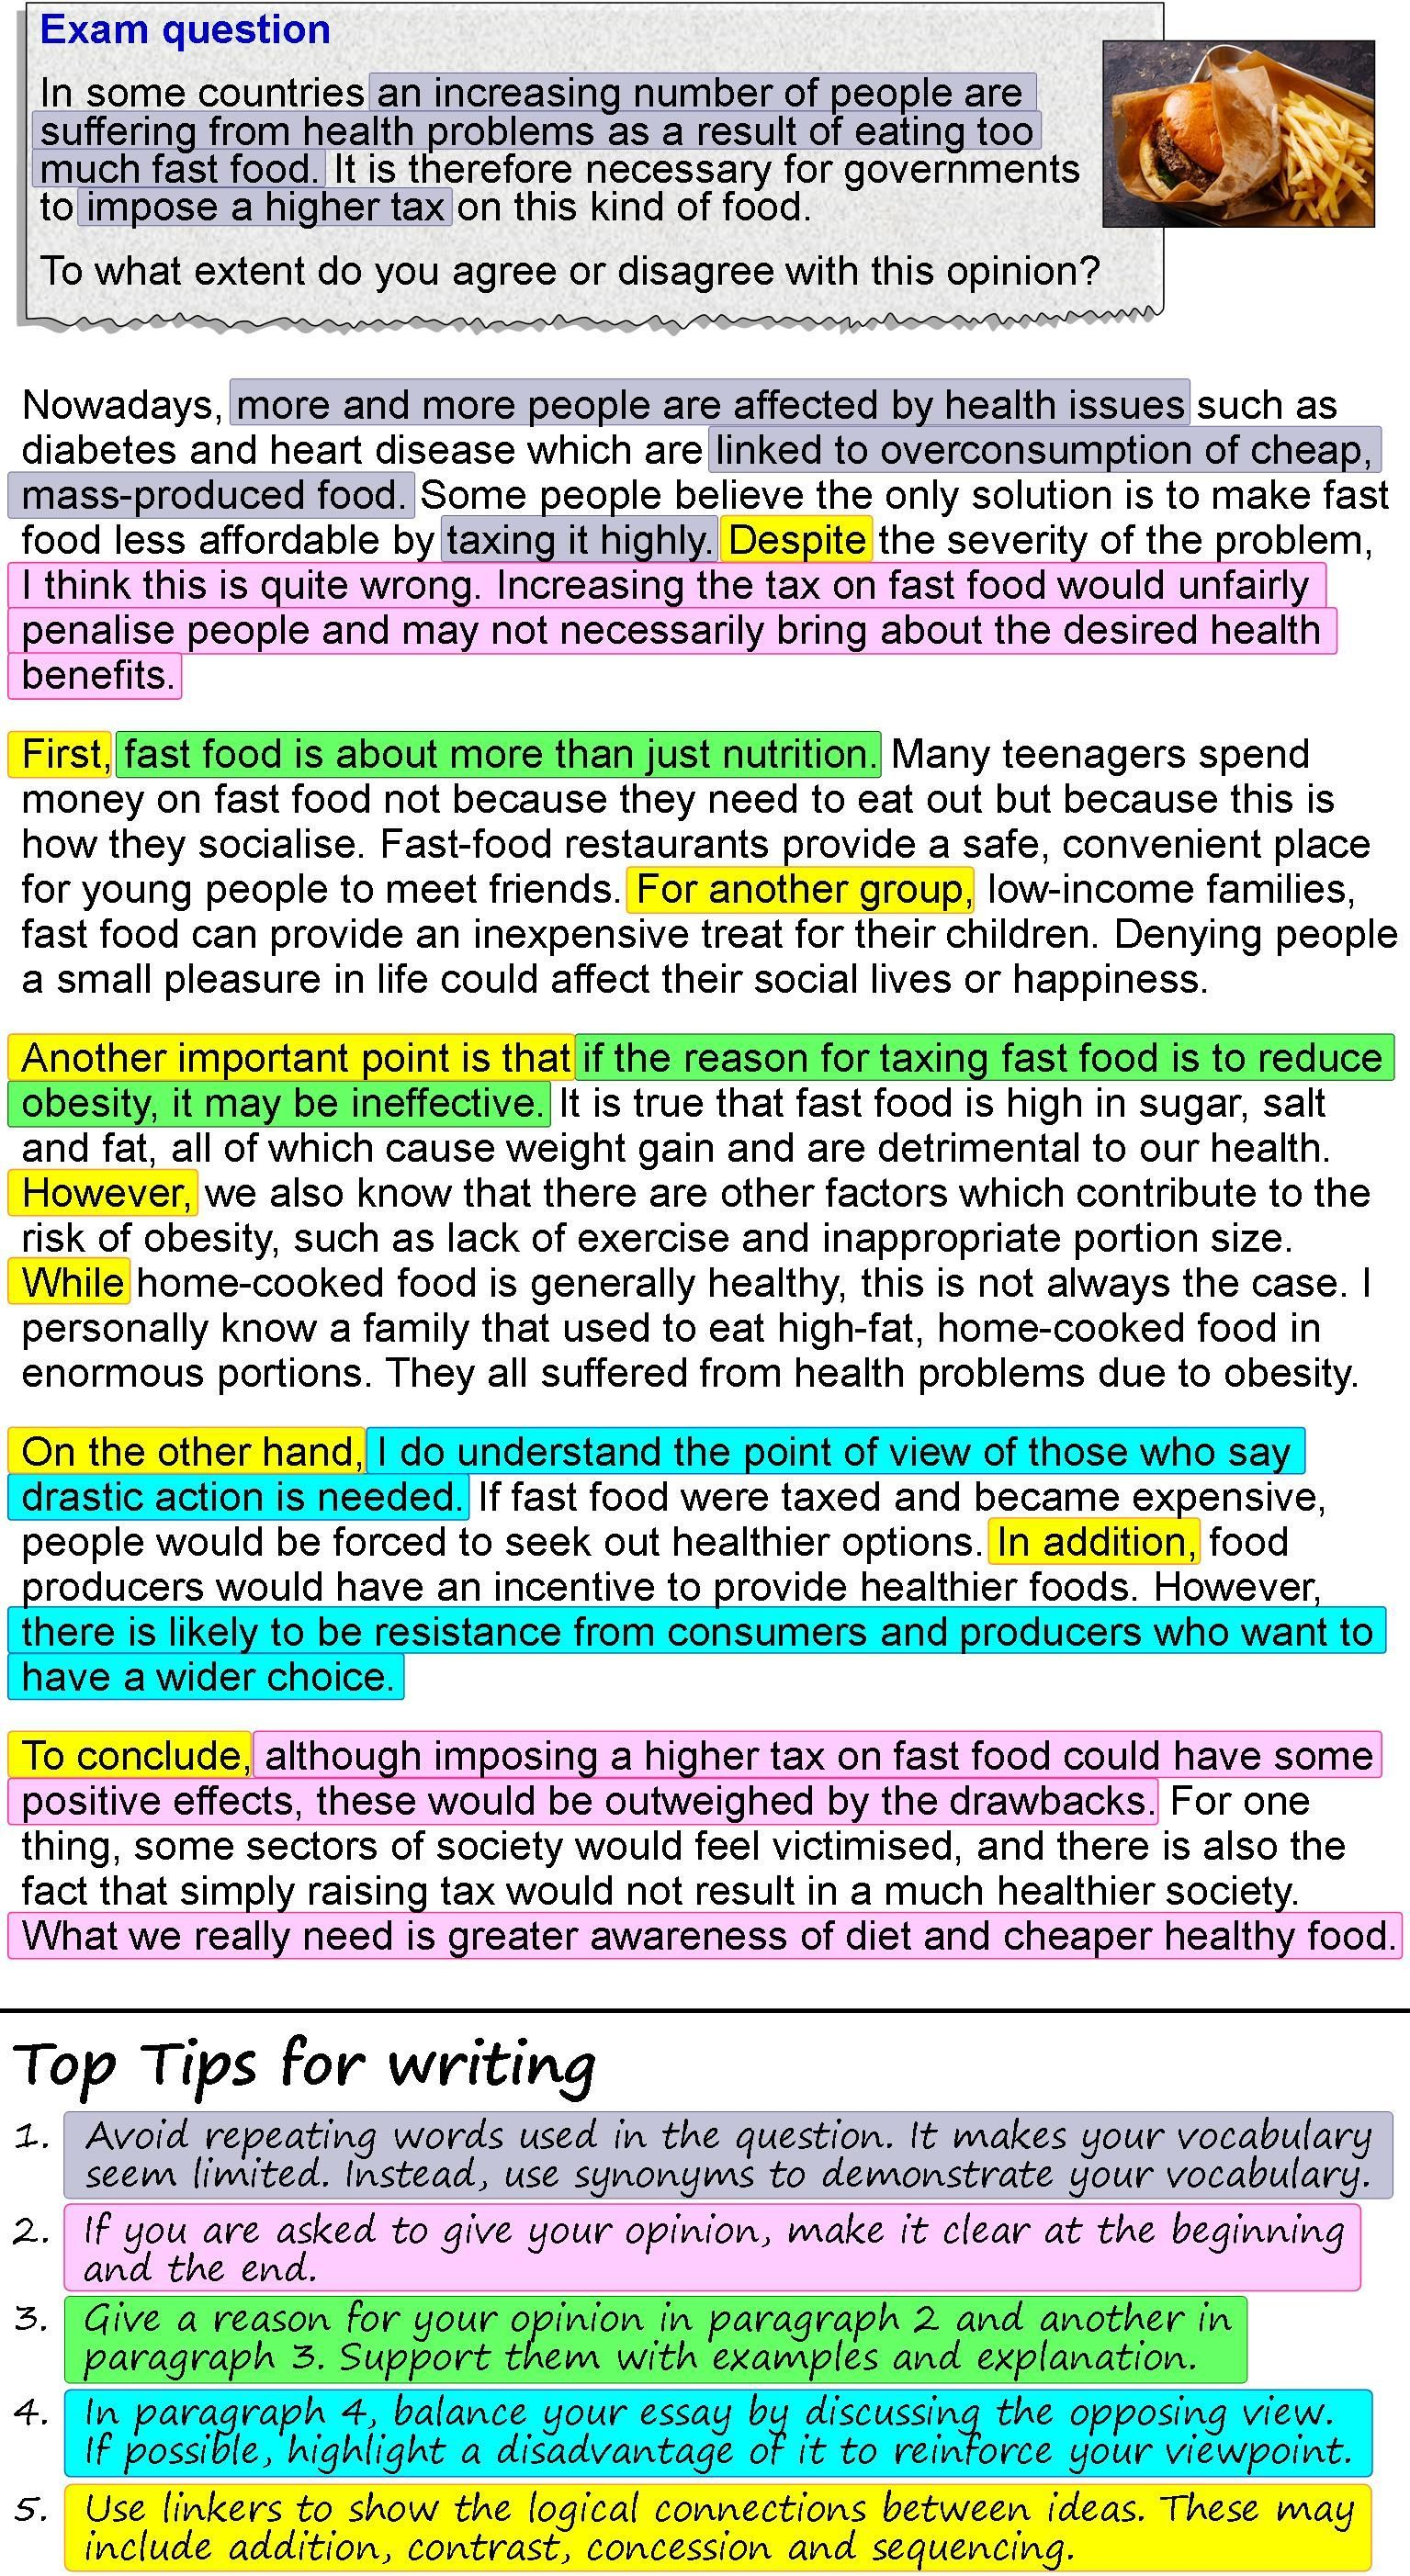 Essay On Say No To Fast Food Have You Ever Eaten Almost Day Of The Week Well If Are Your Writing Skill Ielt Opinion Point View A Rose For Emily Narrative Example 3rd Person